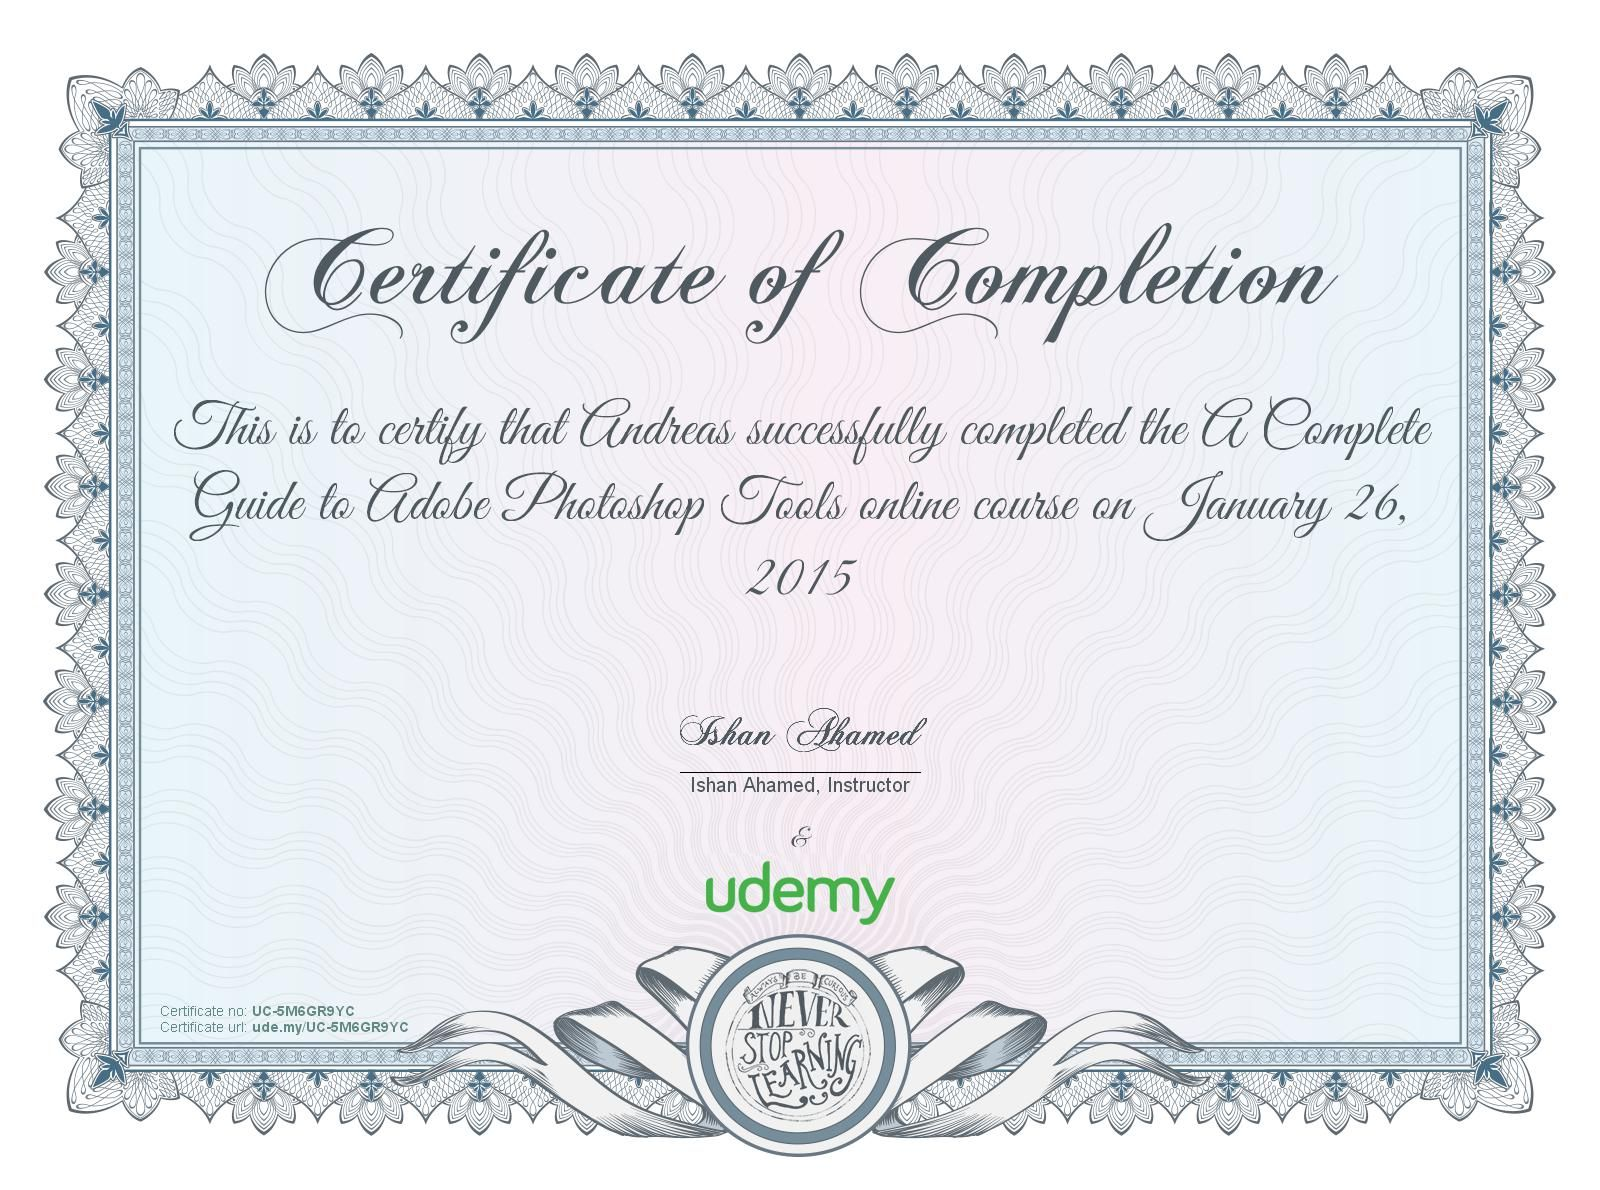 Got my first certificate via Udemy com - Completion certificate for